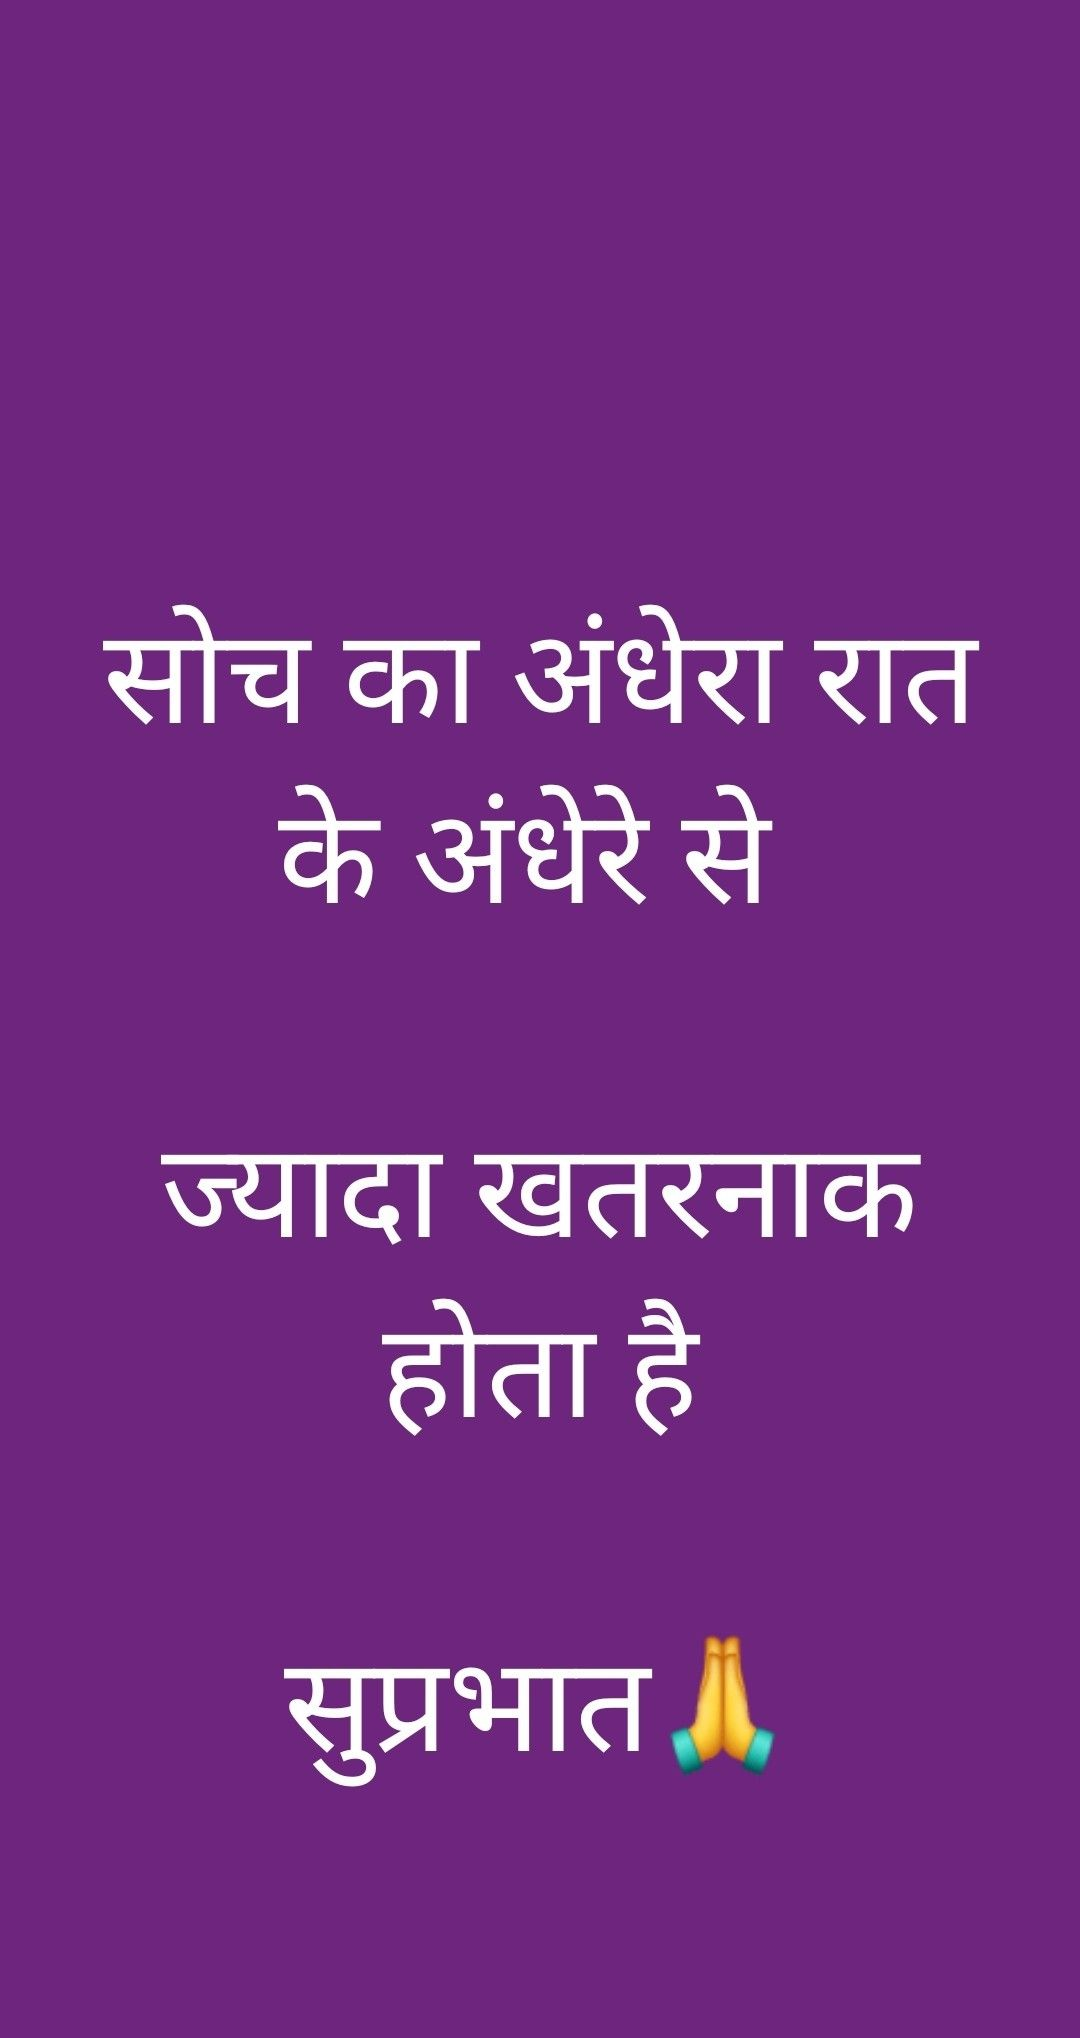 Pin By Munavver On Everyone Feeling Good Thoughts Quotes Hindi Good Morning Quotes Thinking Quotes